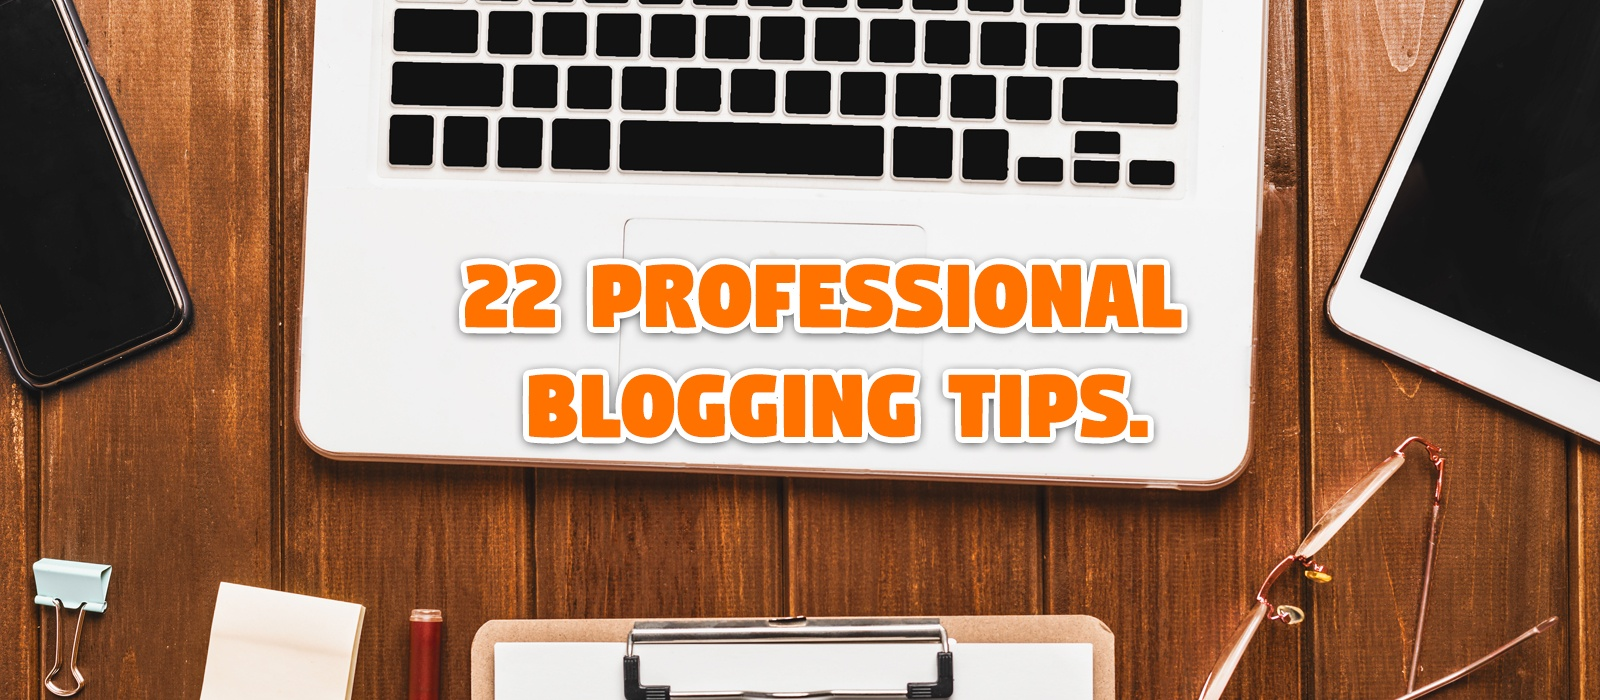 22 professional blogging tips